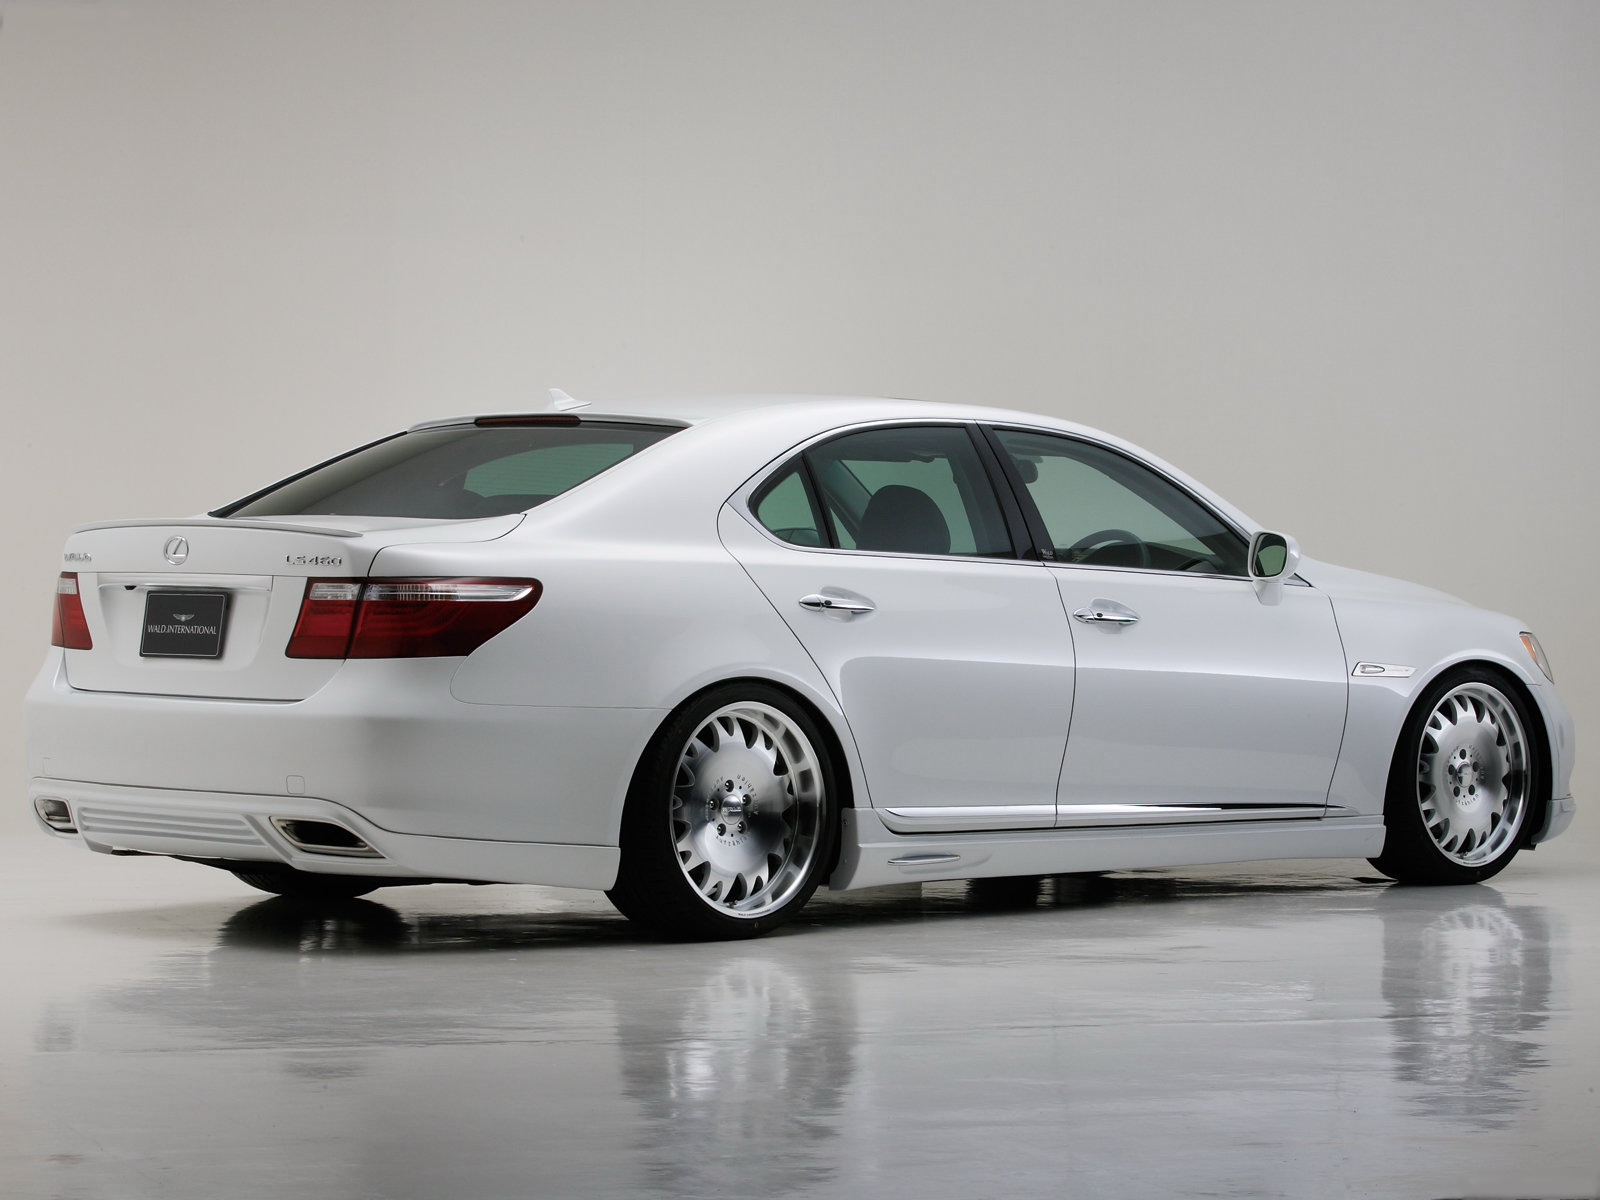 lexus ls 460 2006 technical specifications interior and exterior